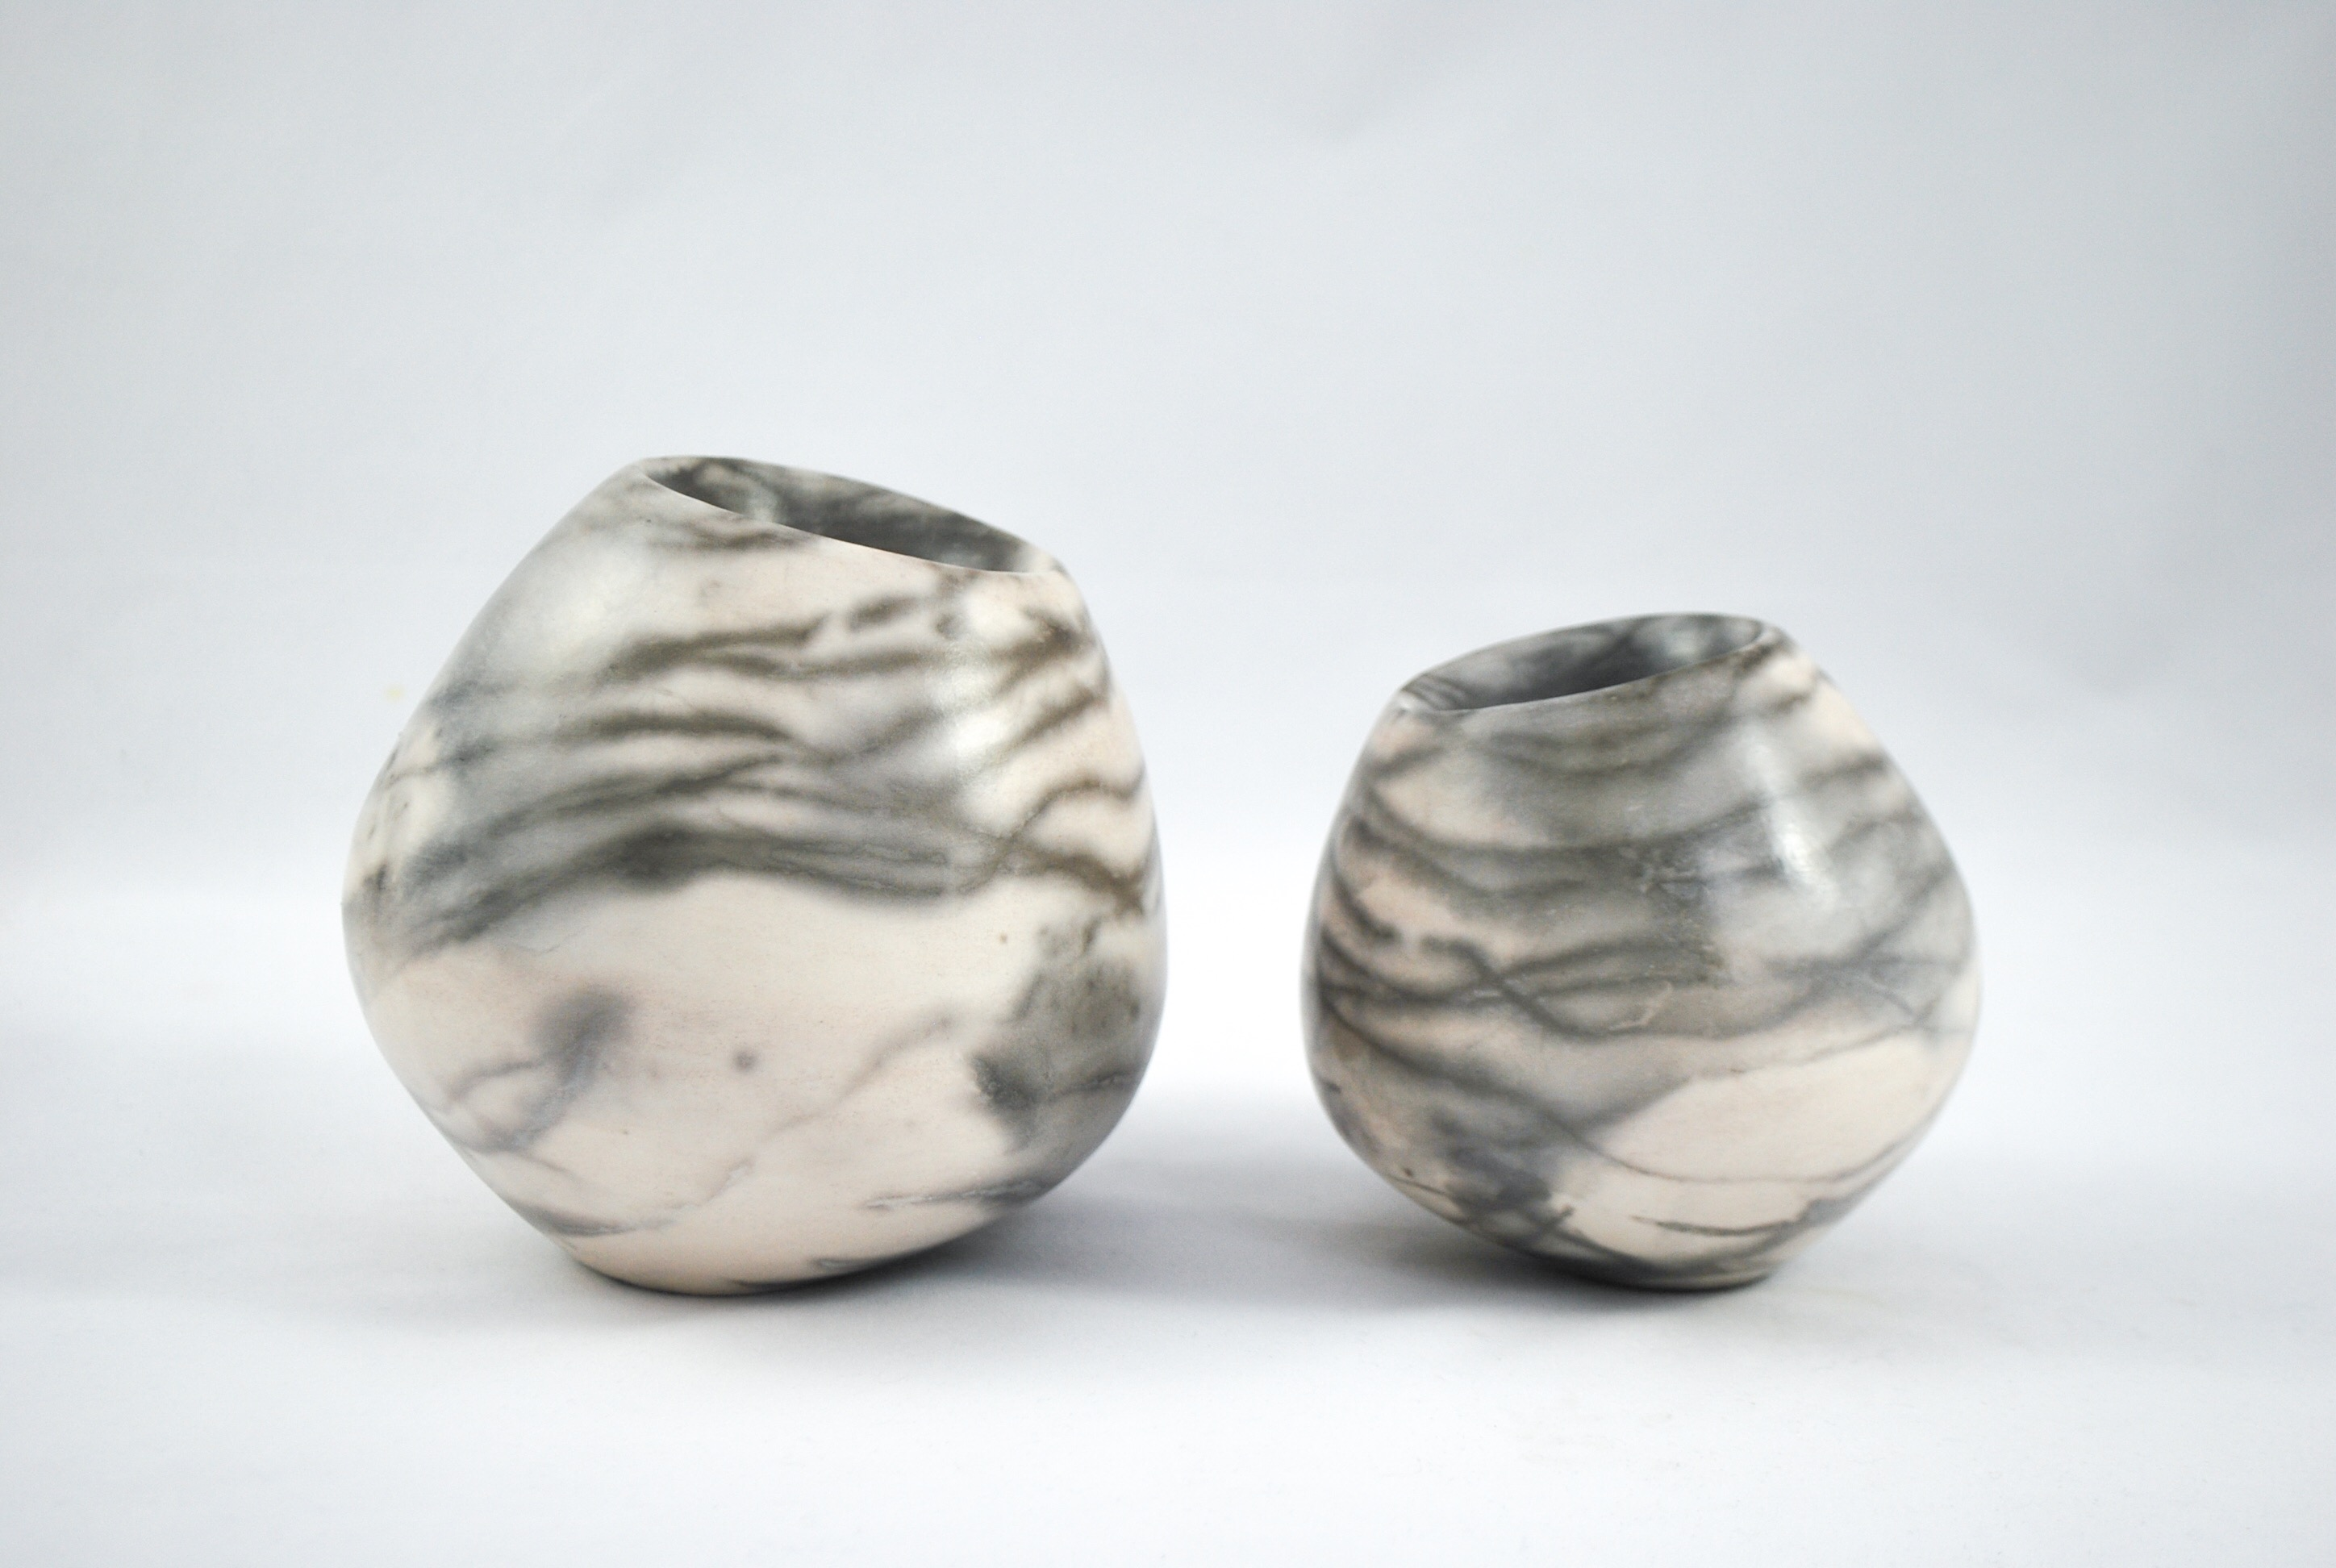 Smokefired hollow form vessels - 10-15cm